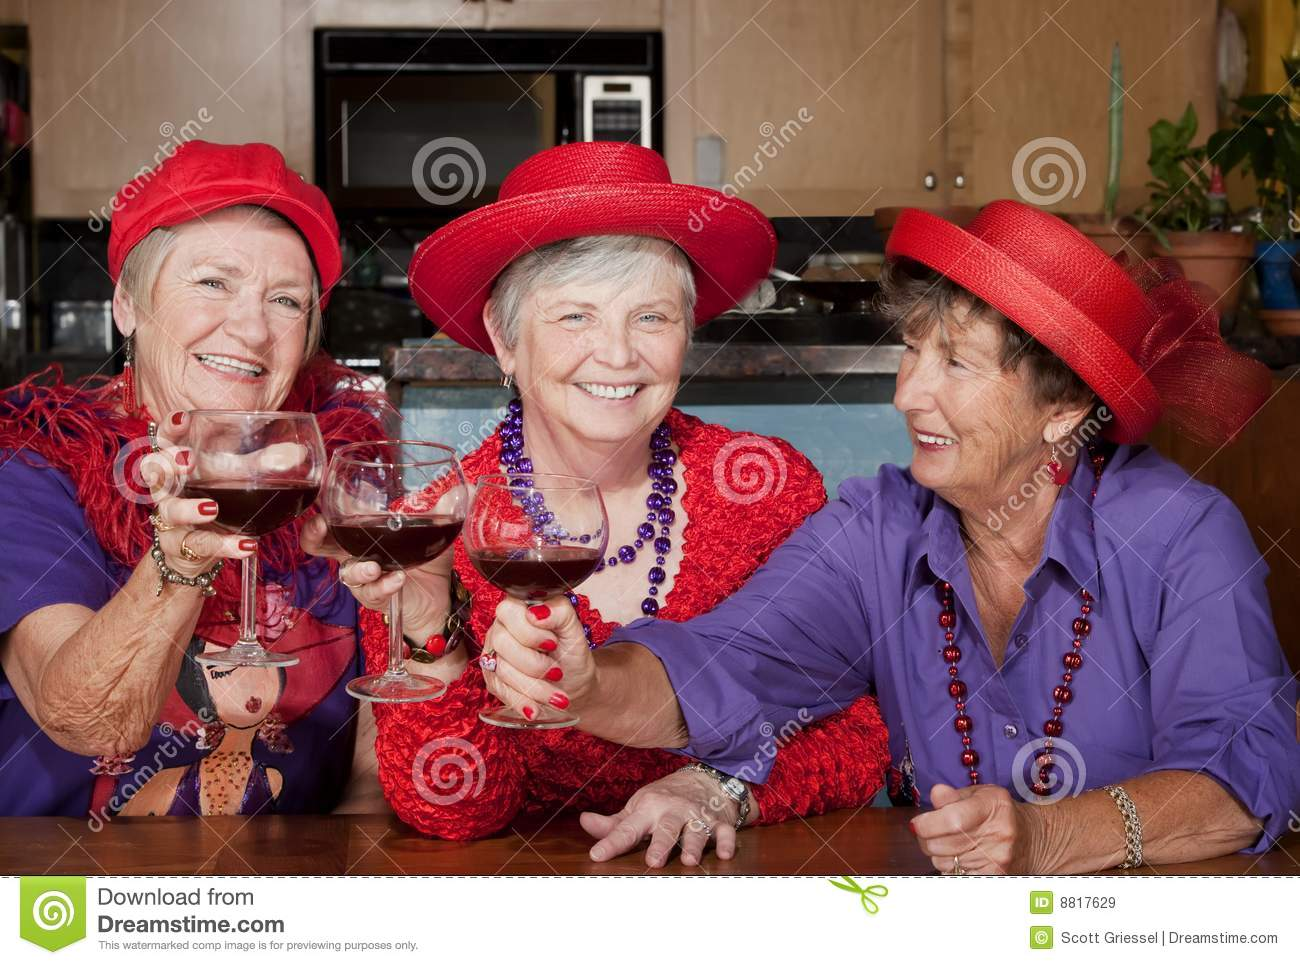 Three Red Hat Ladies Toasting With Wine Stock Image - Image of toast ... 1a6c66c106a